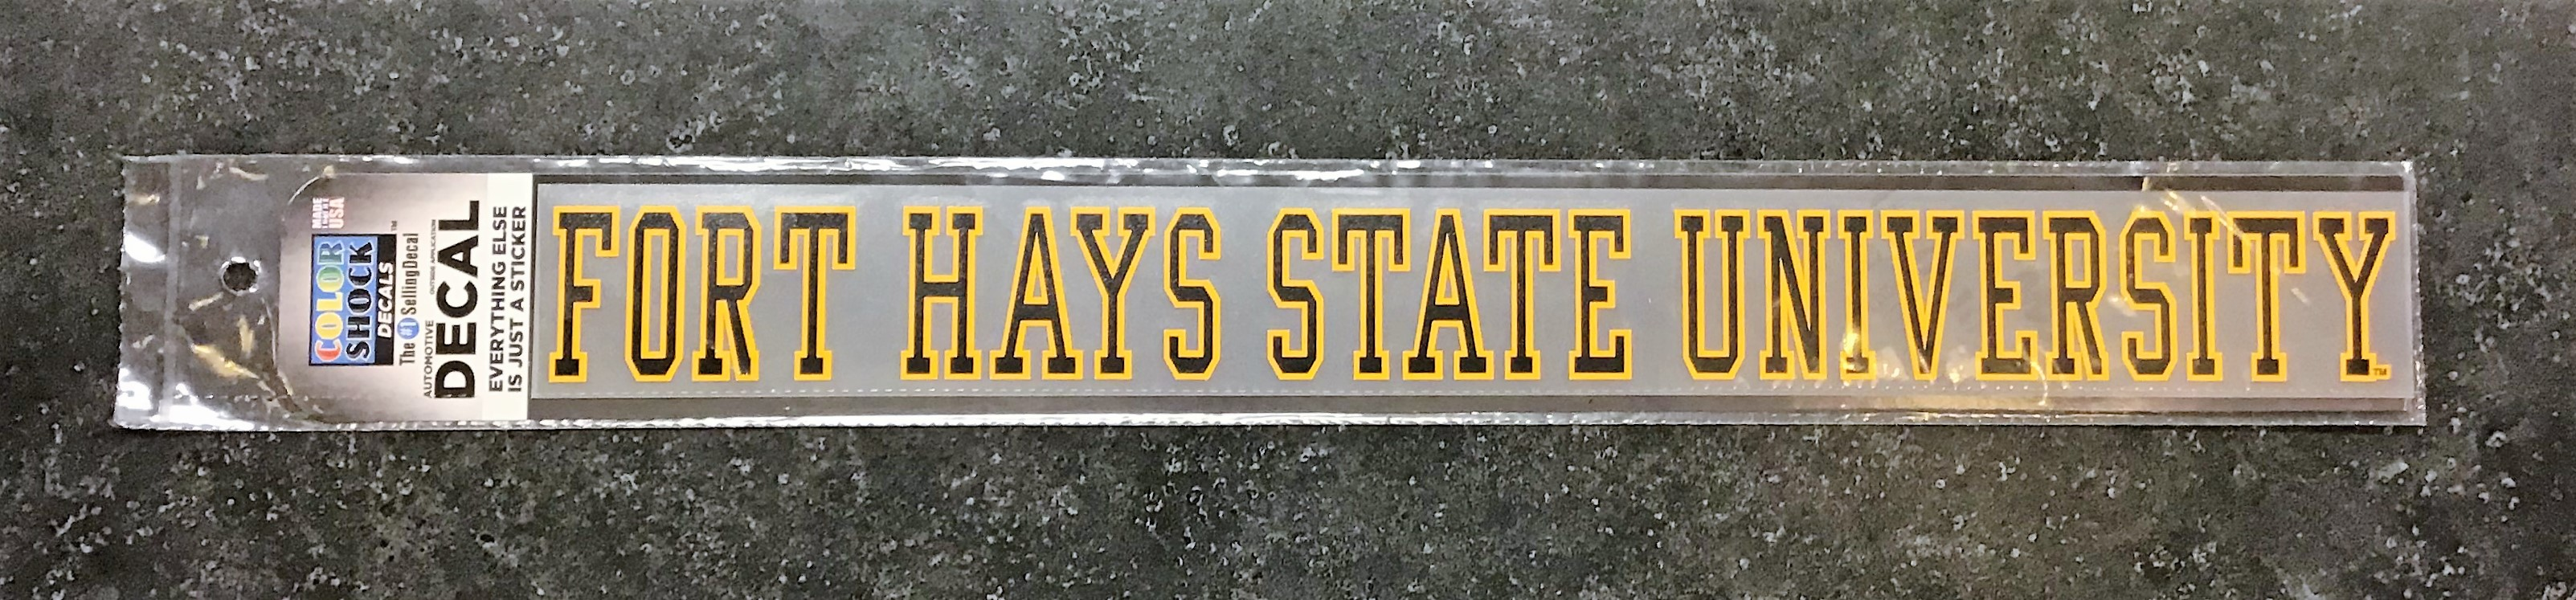 Image for the Fort Hays State University Strip Decal, CDI Color Shock product